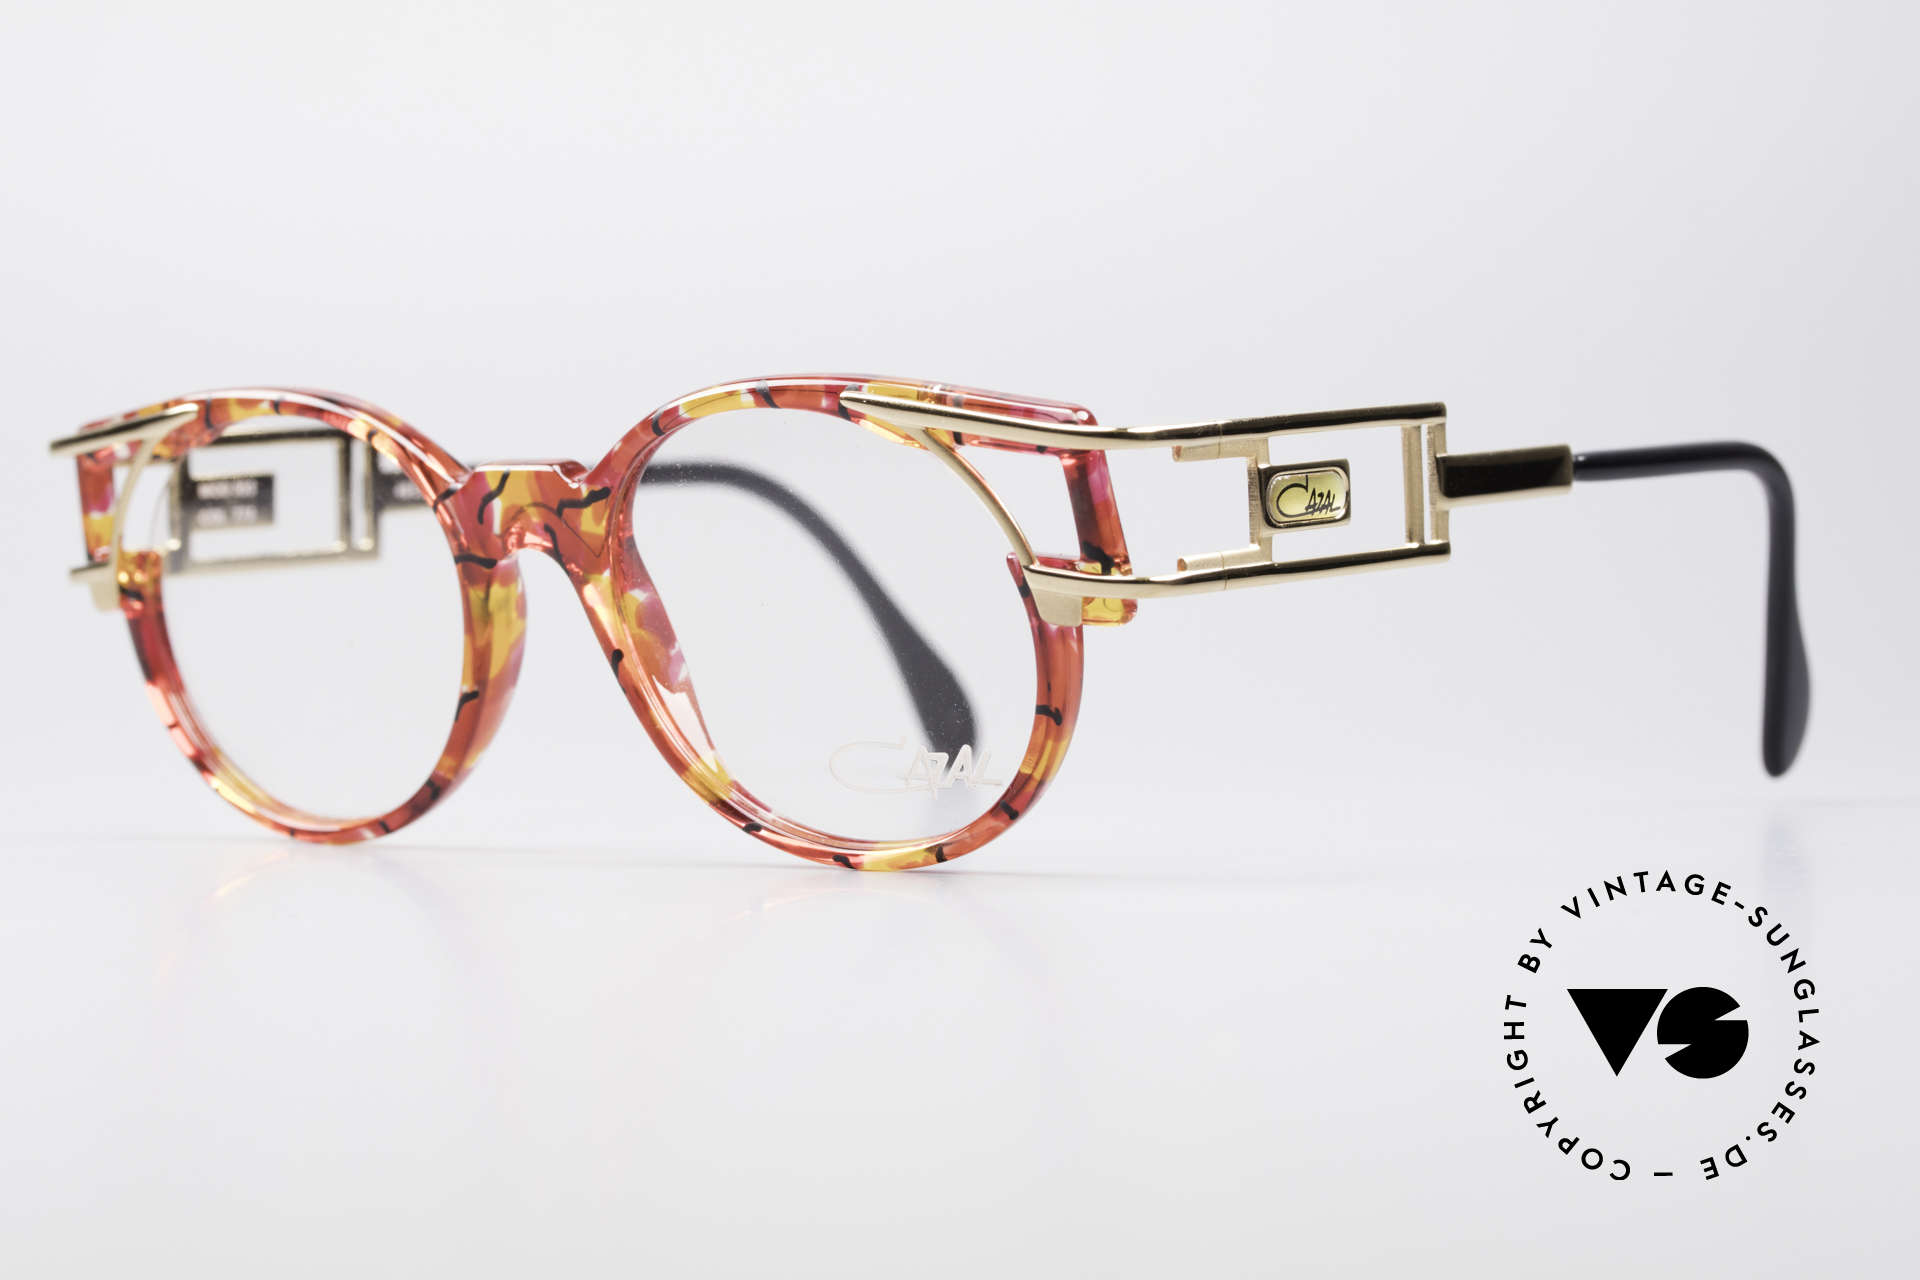 Cazal 353 90s Old School HipHop Glasses, temple design is identical to the legendary Cazal 958, Made for Men and Women